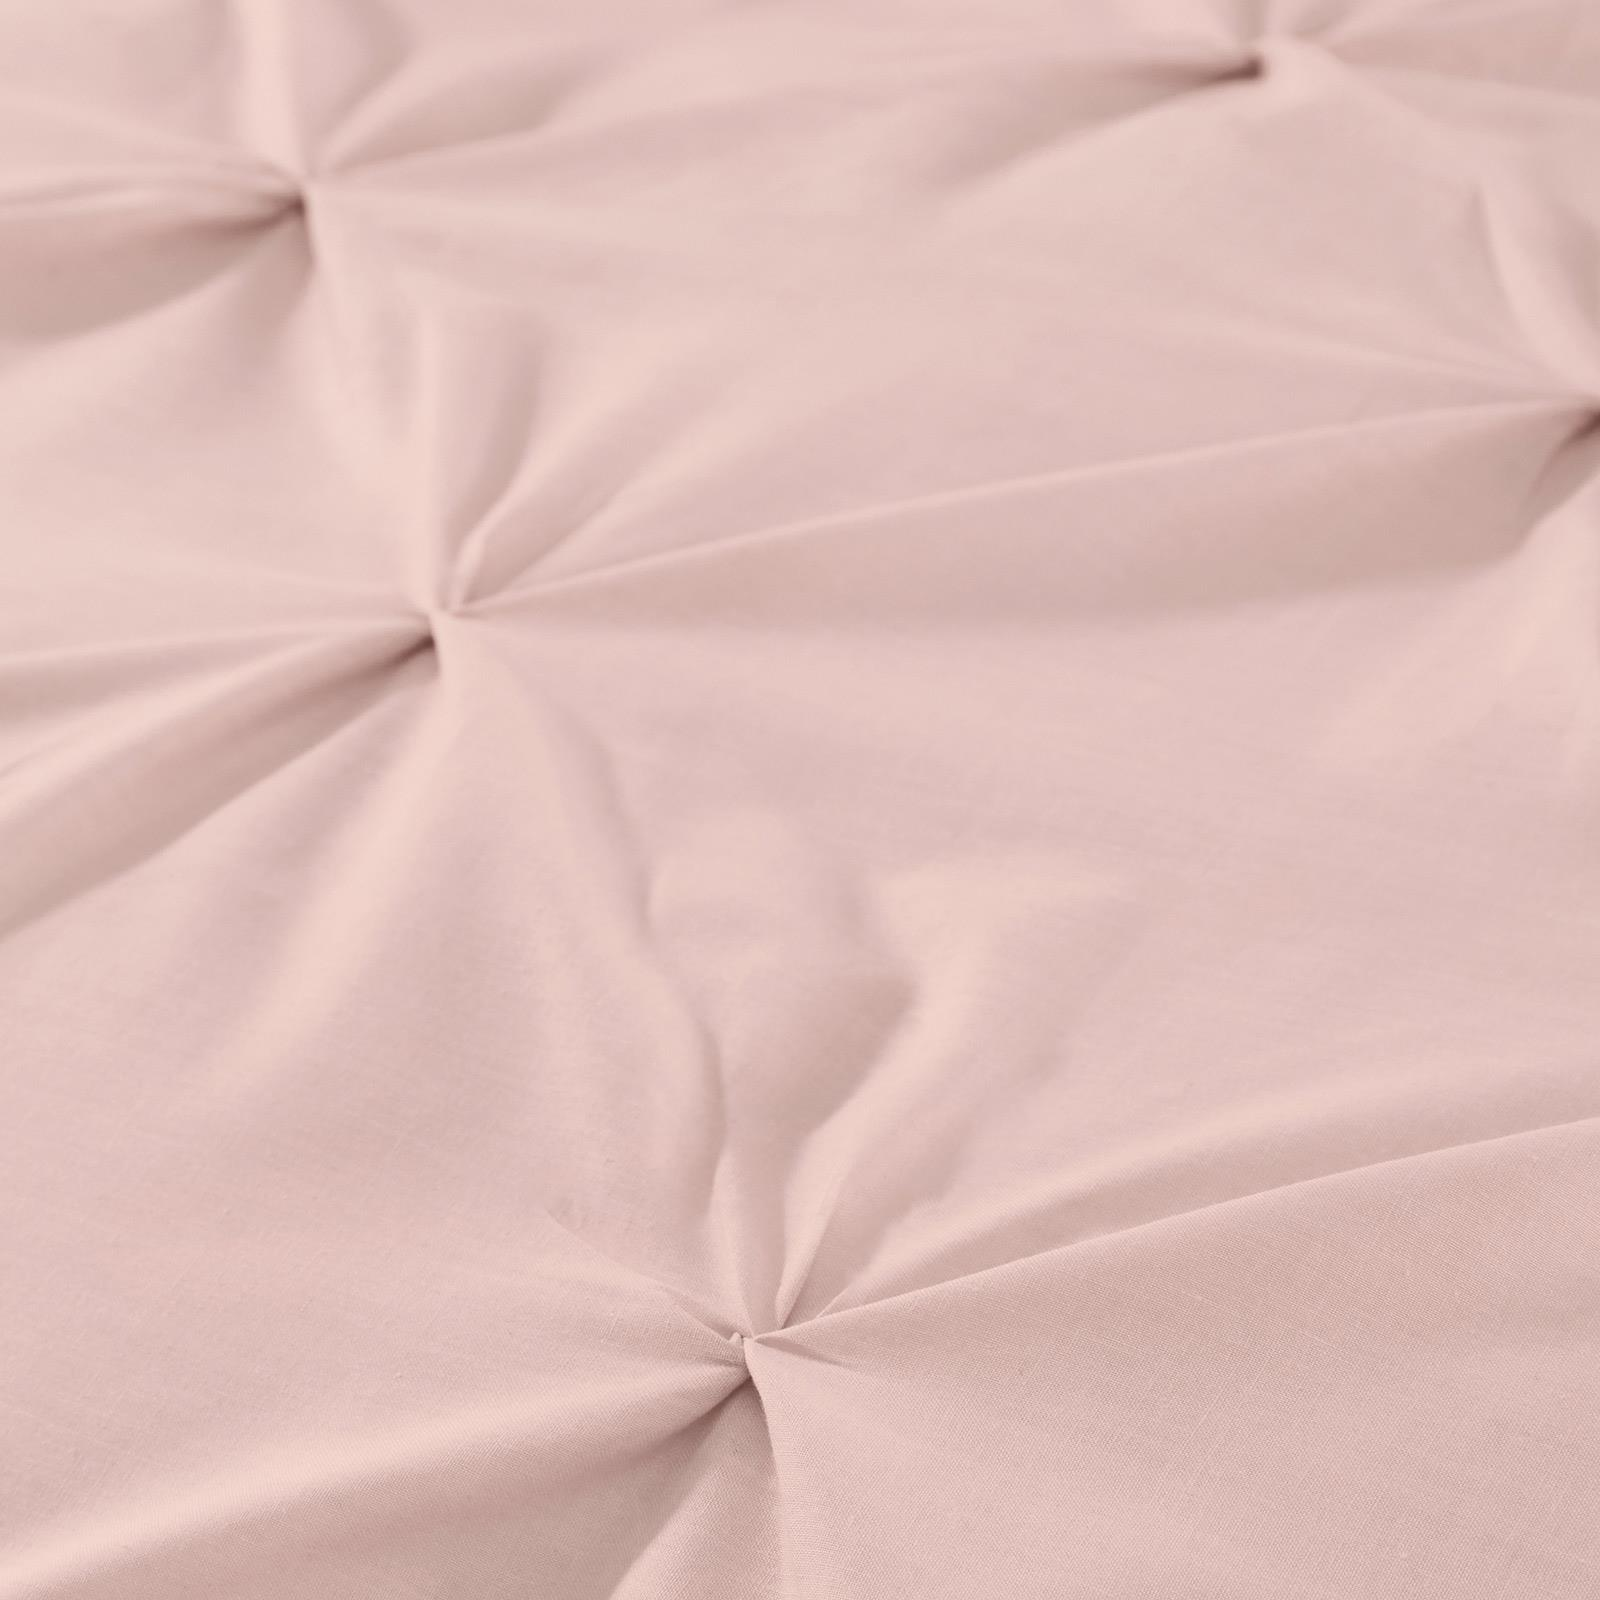 Blush-Duvet-Covers-Ruched-Pin-Tuck-Stitched-Plain-Pink-Quilt-Cover-Bedding-Sets thumbnail 10